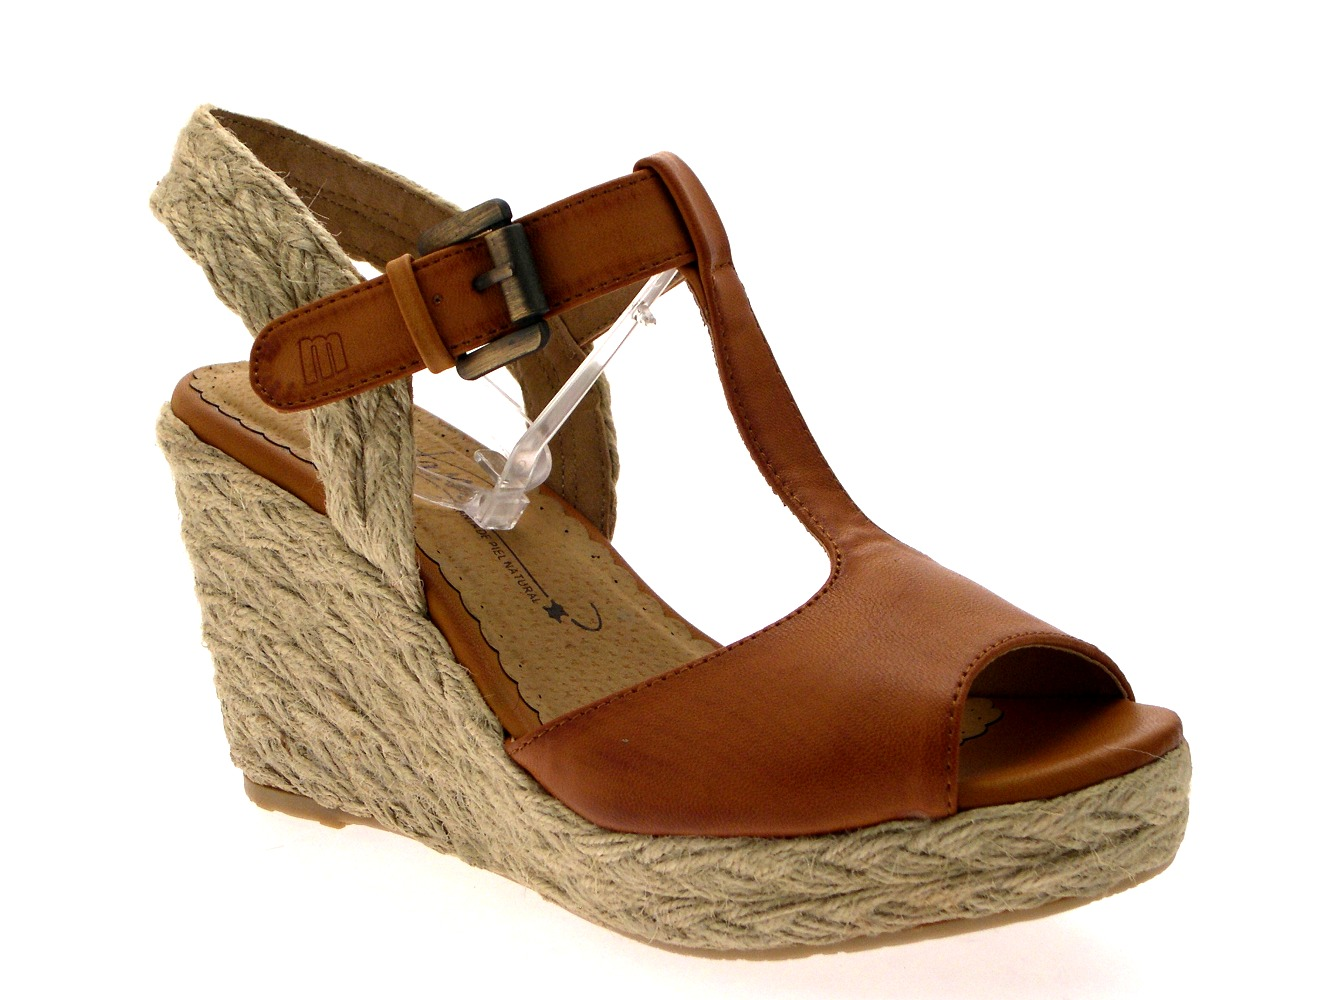 WOMENS HESSIAN ROPE WEDGE PLATFORM TBAR SANDALS SUMMER ...